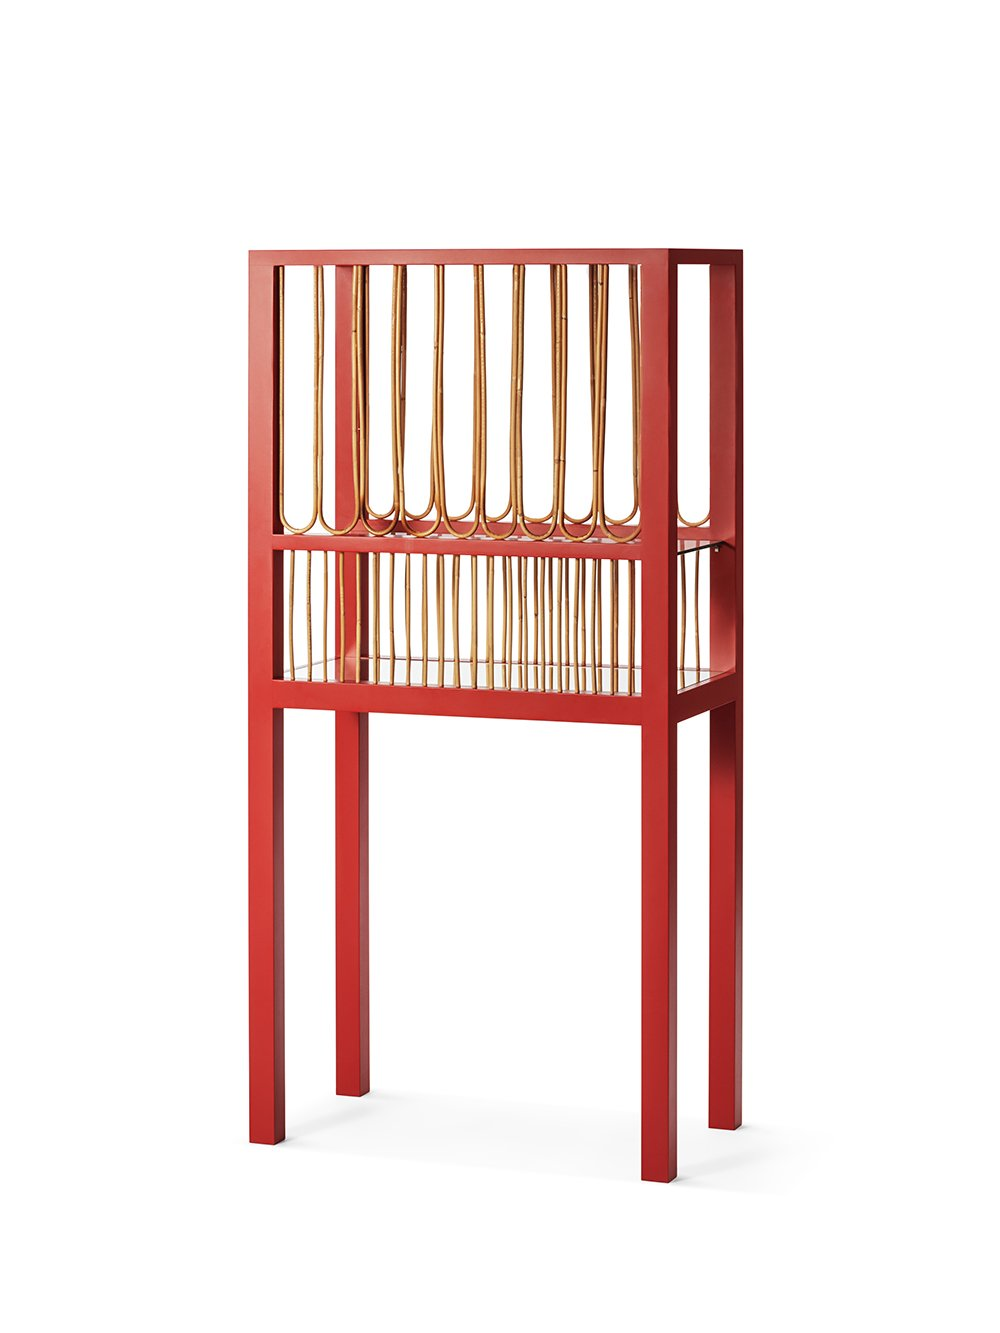 Wooden, rattan and glass Red Cabinet at 3daysofdesign